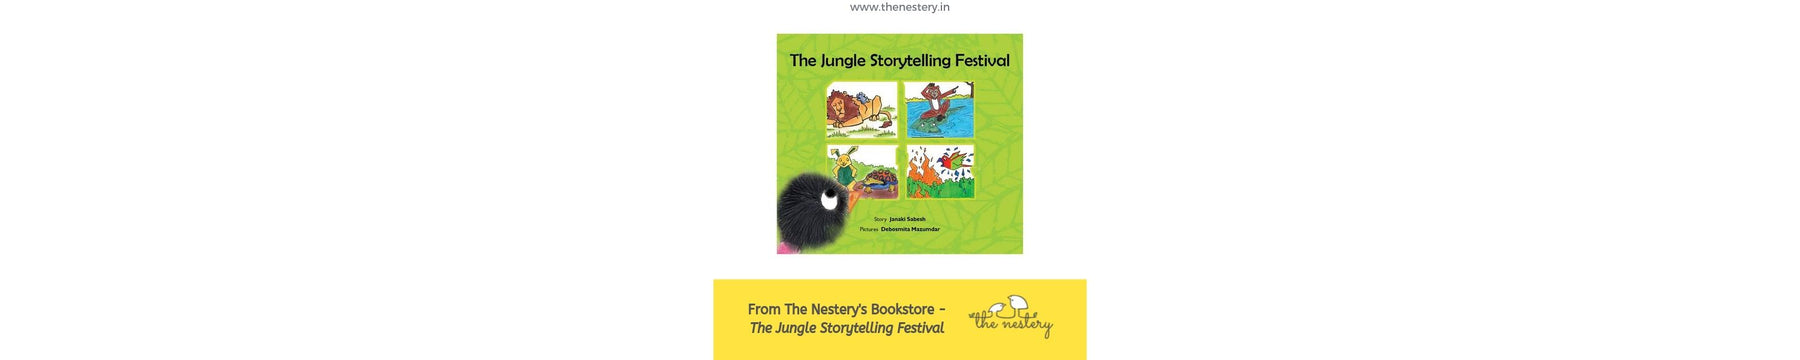 Book Review - The Jungle Storytelling Festival